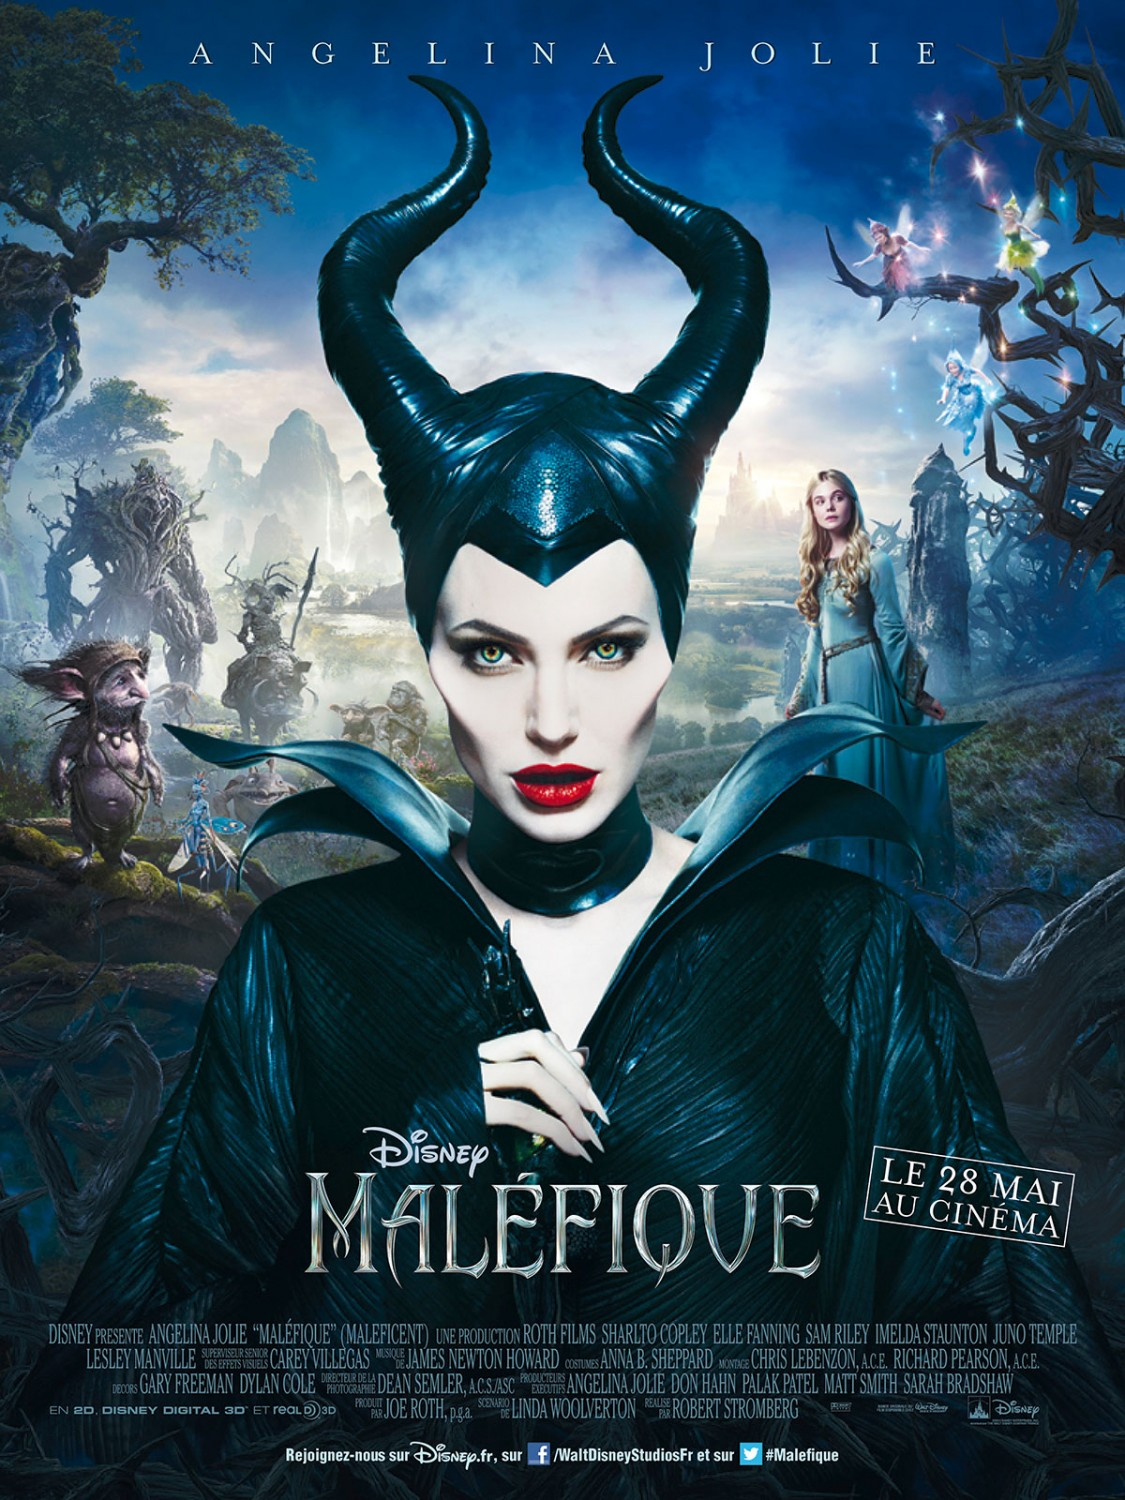 Maleficent-Official Poster Banner PROMO XLG-04ABRIL2014